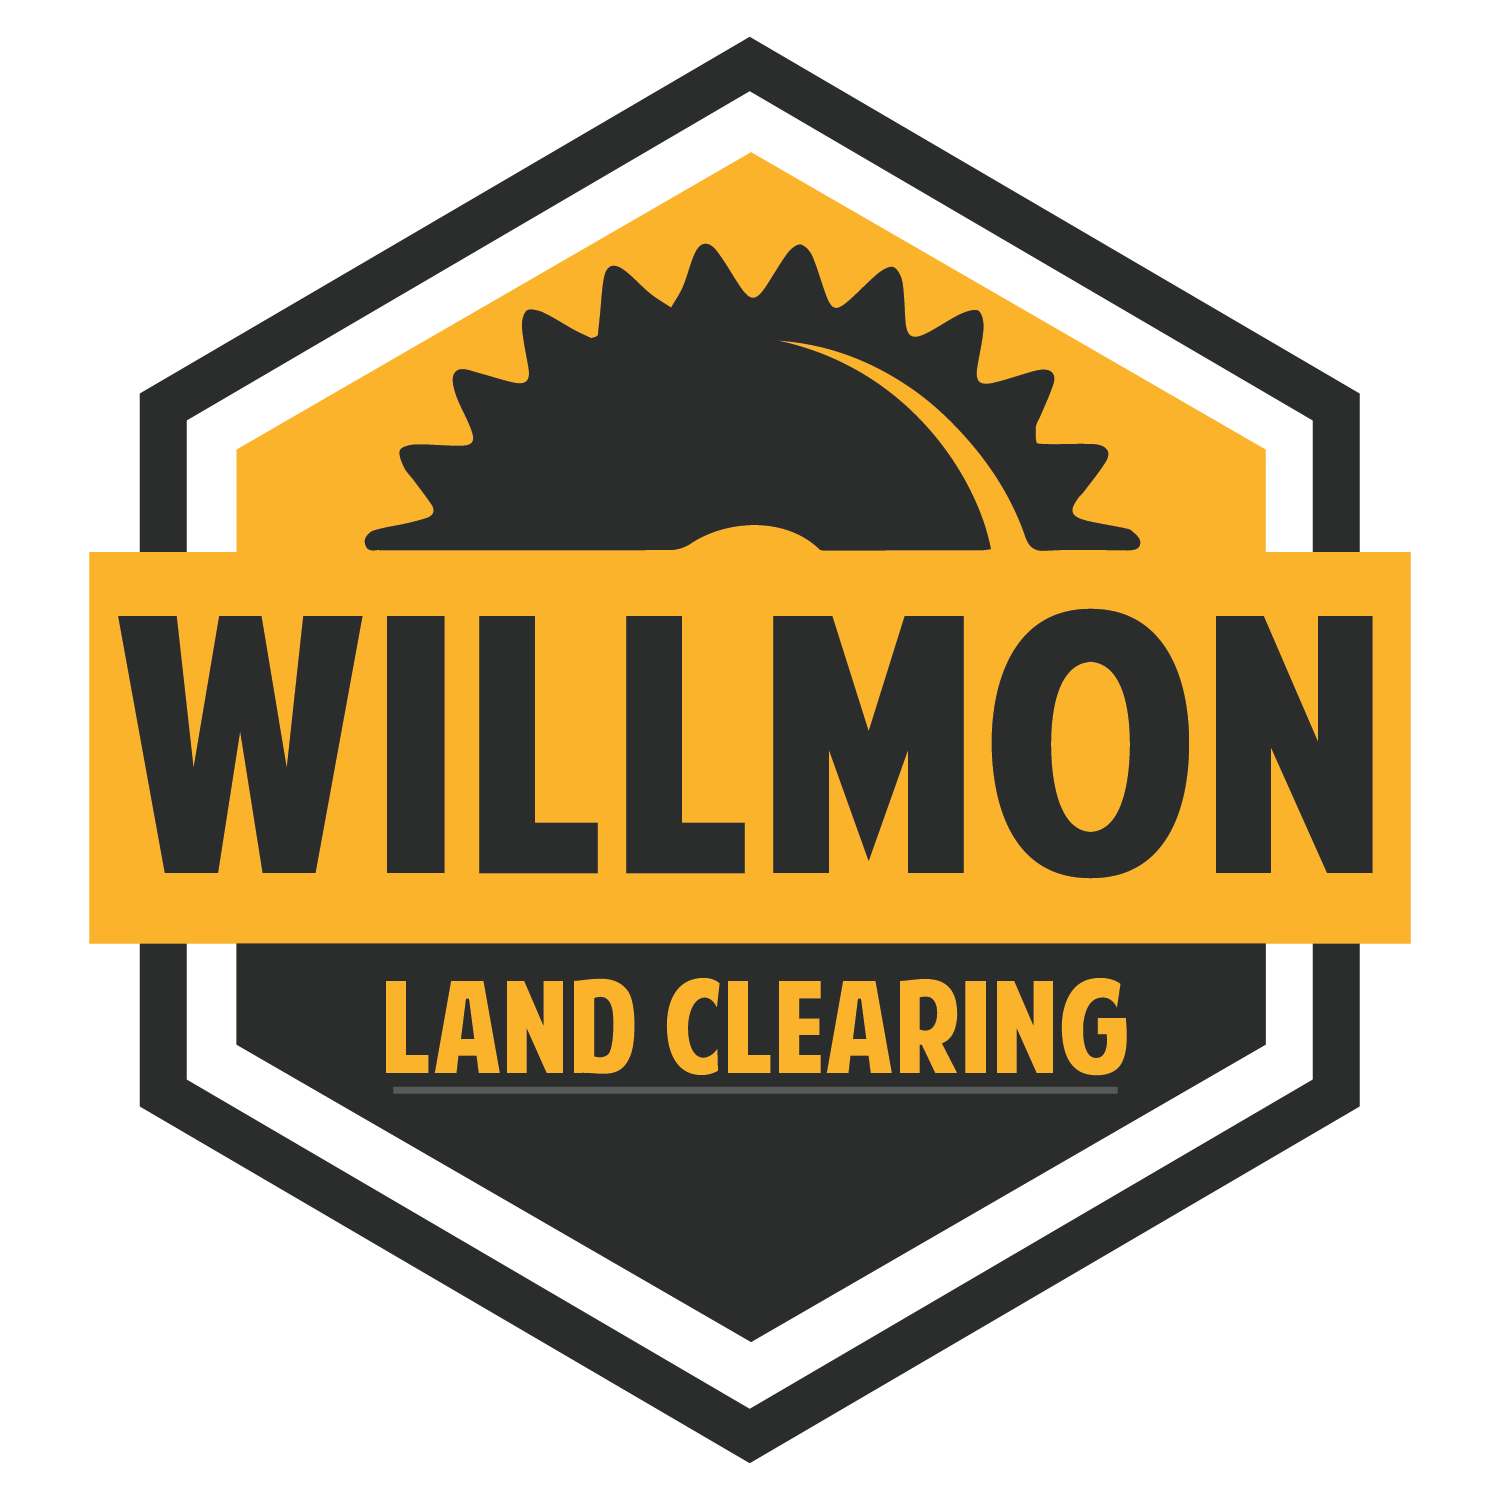 Willmon Land Clearing